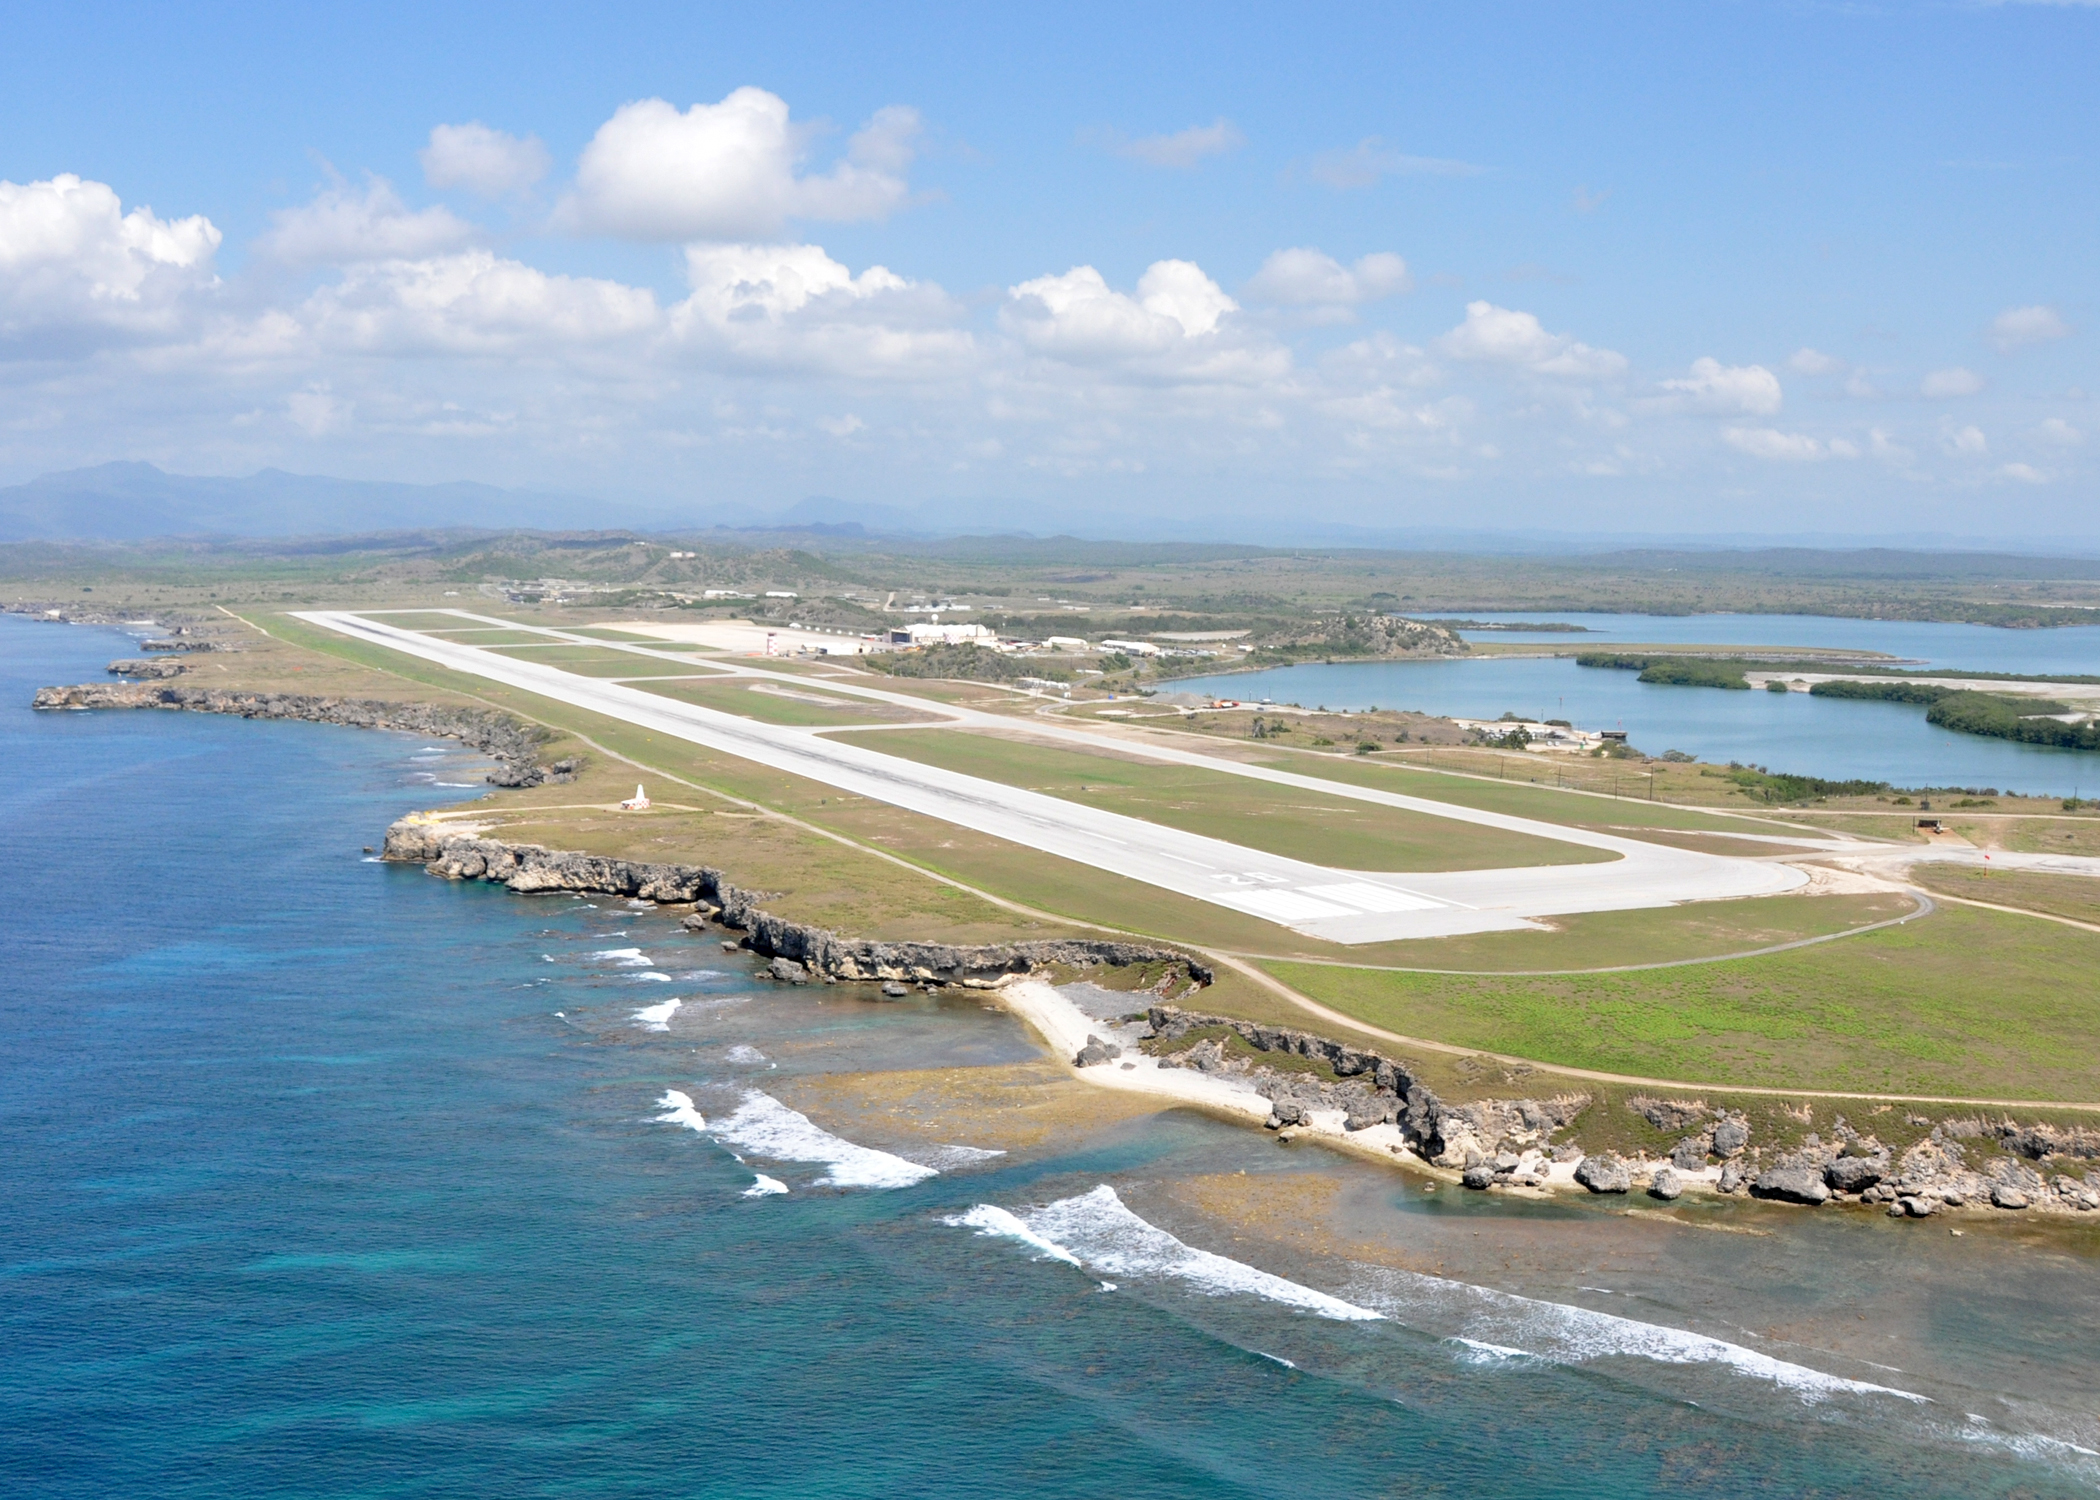 http://upload.wikimedia.org/wikipedia/commons/e/e8/US_Navy_100506-N-8241M-317_An_aerial_view_of_the_Leeward_Airfield_at_Naval_Station_Guantanamo_Bay,_Cuba.jpg